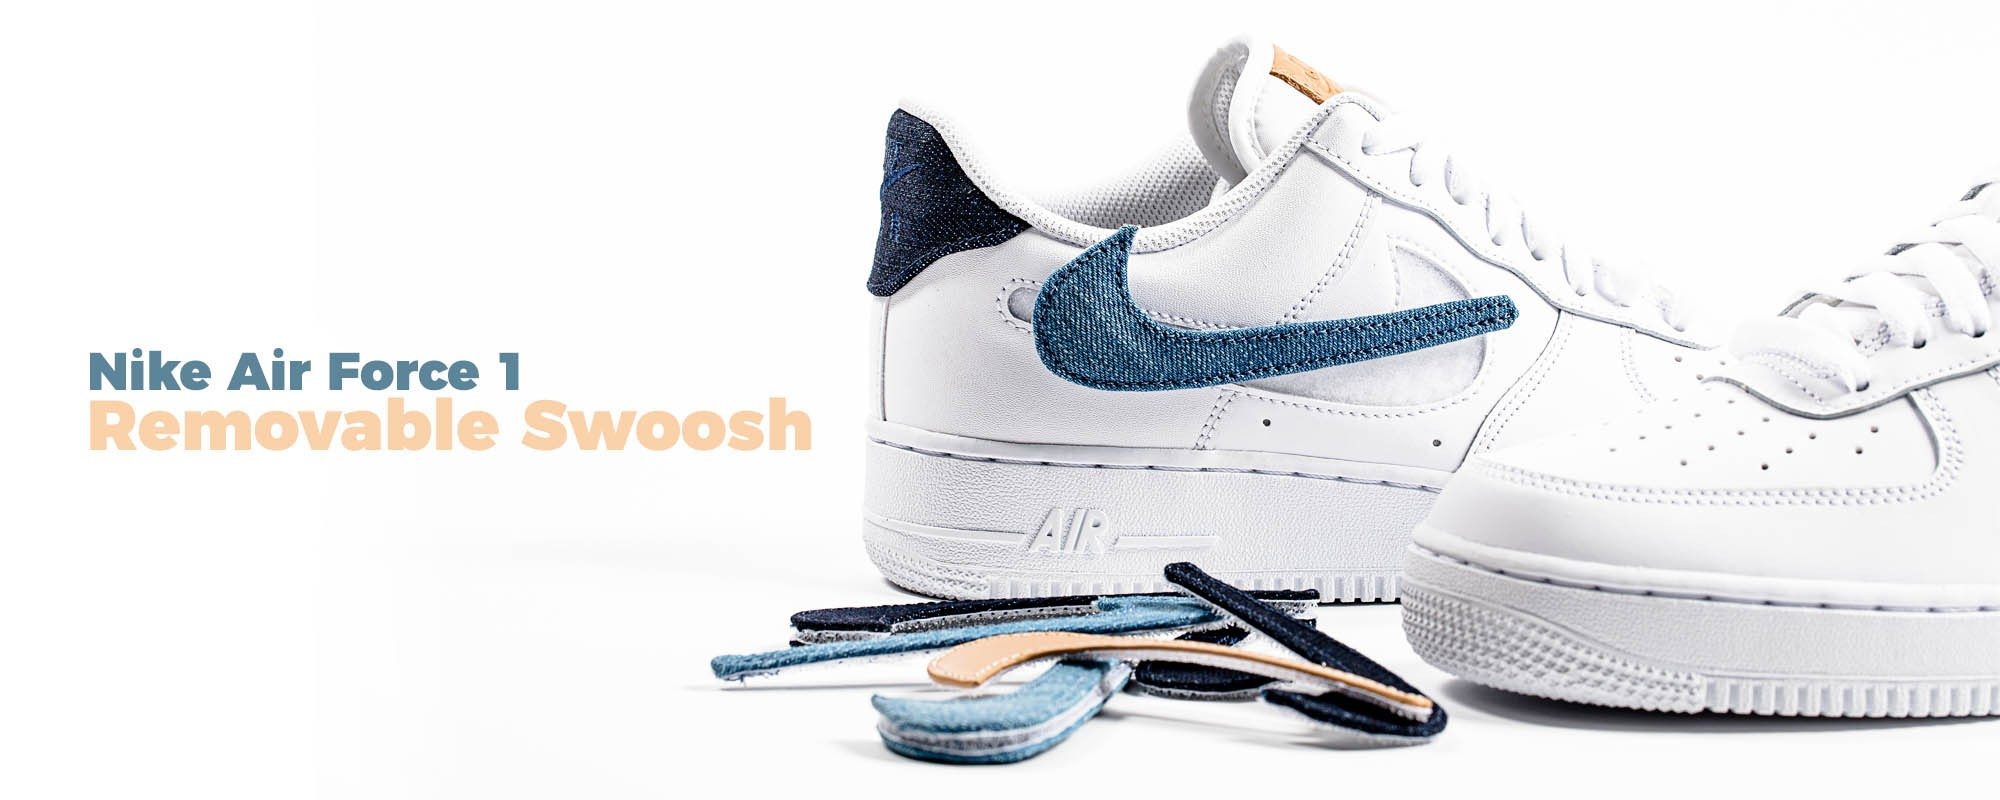 Nike Air Force 1 07' LV8 3 White Removable Swoosh